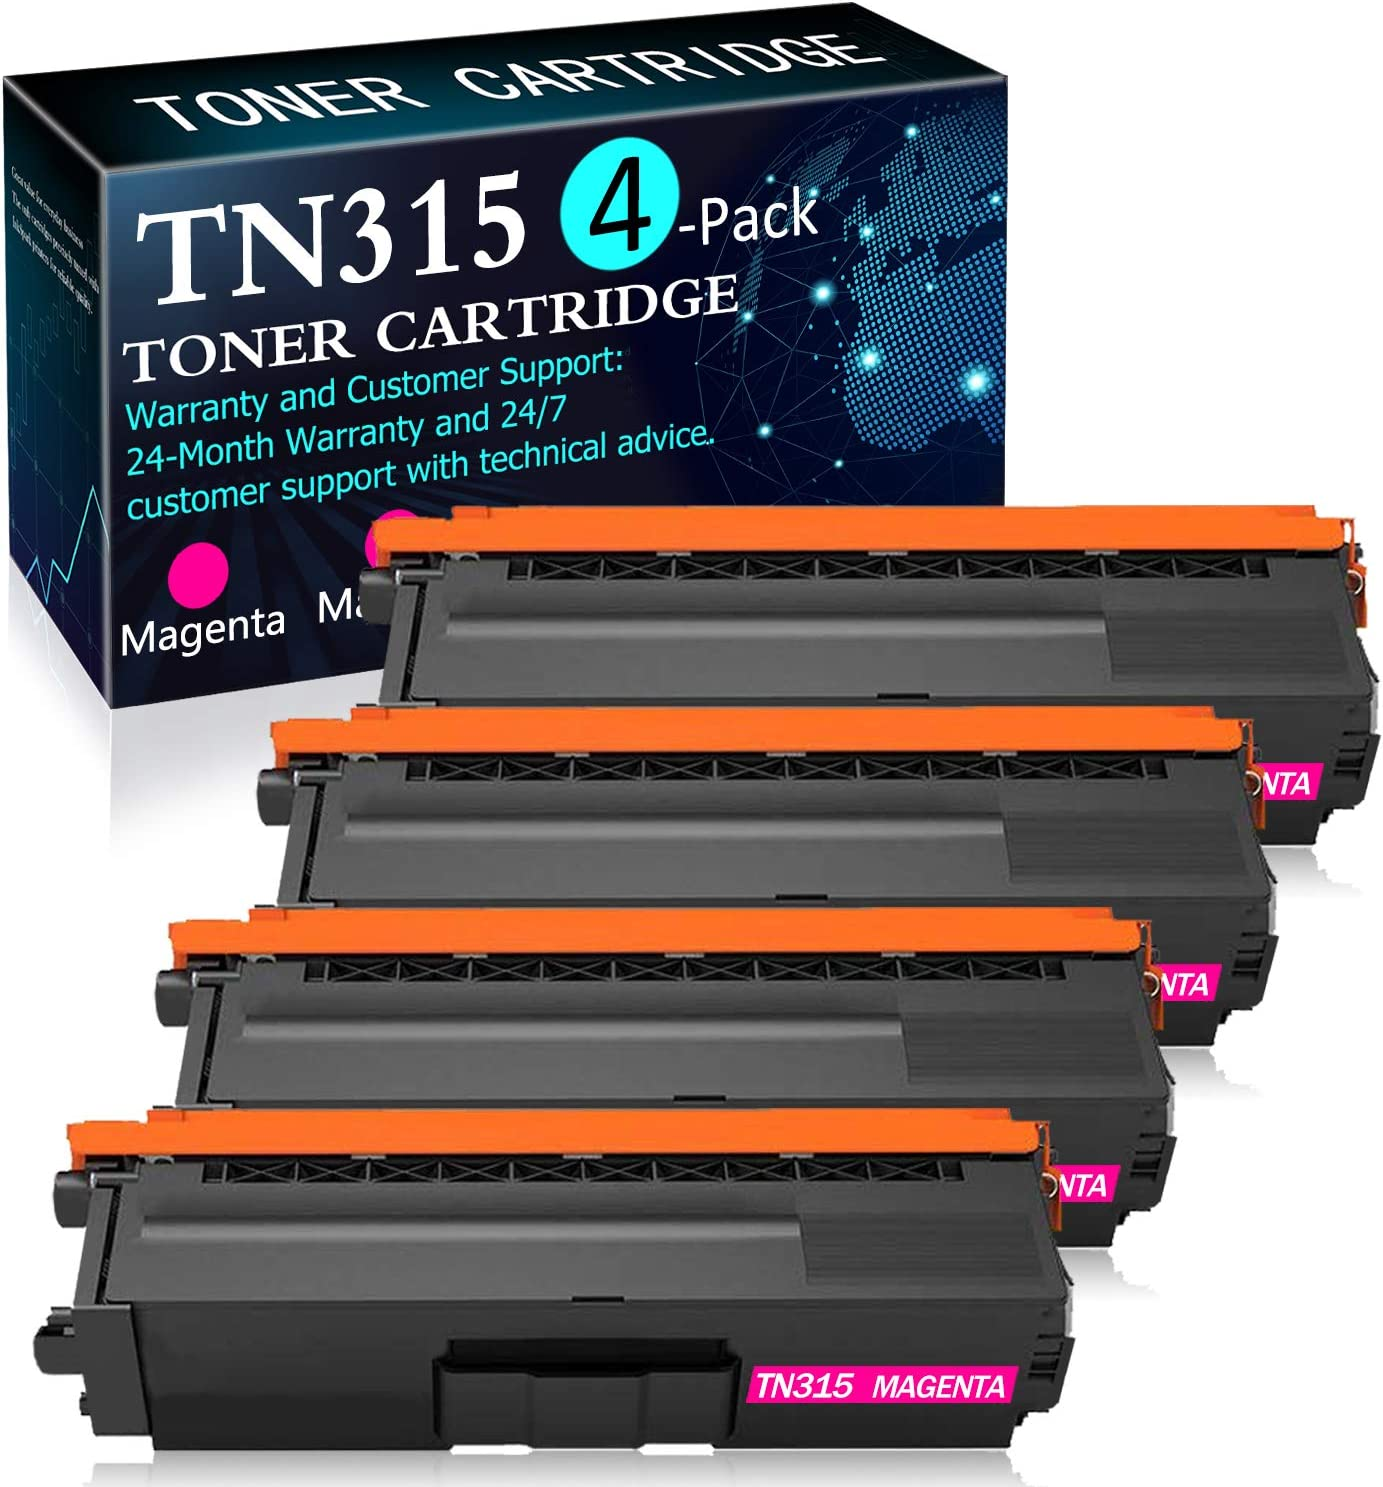 4 Pack Magenta TN315M Toner Cartridge Replacement for Brother HL-4150CDN 4140CW 4570CDW 4570CDWT MFC-9640CDN 9650CDW 9970CDW Printers Toner Cartridge